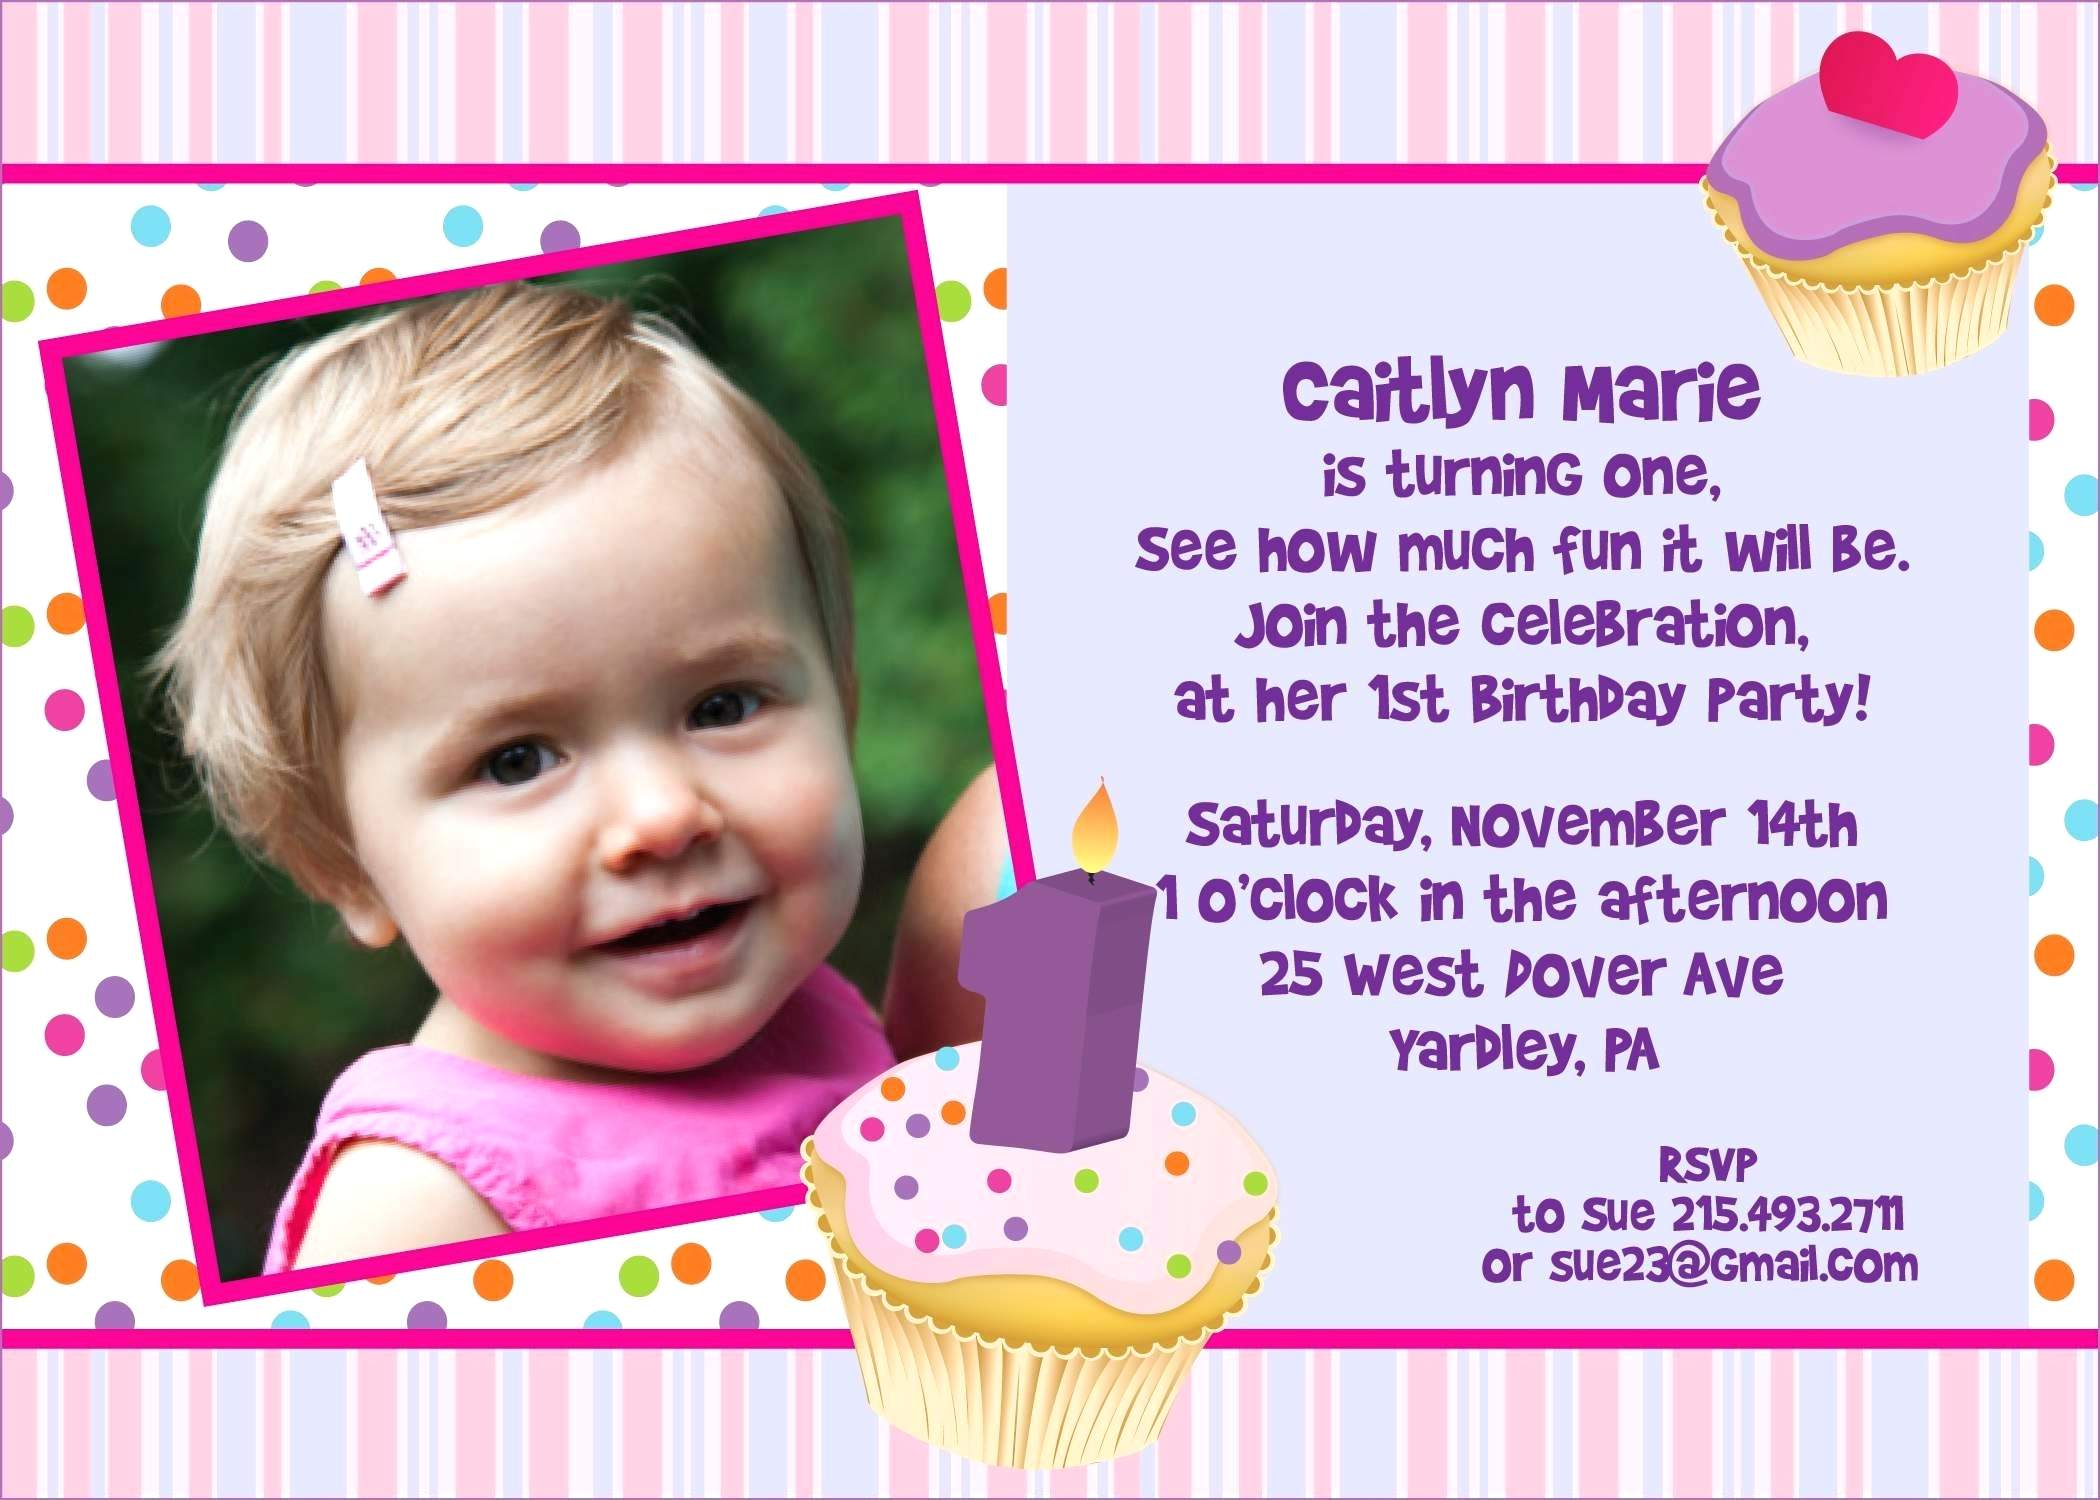 1st birthday invitations templates with photo ; 1st-birthday-invitations-boy-template-baby-first-invitation-templates-free-to-get-ideas-how-make-your-own-design-1